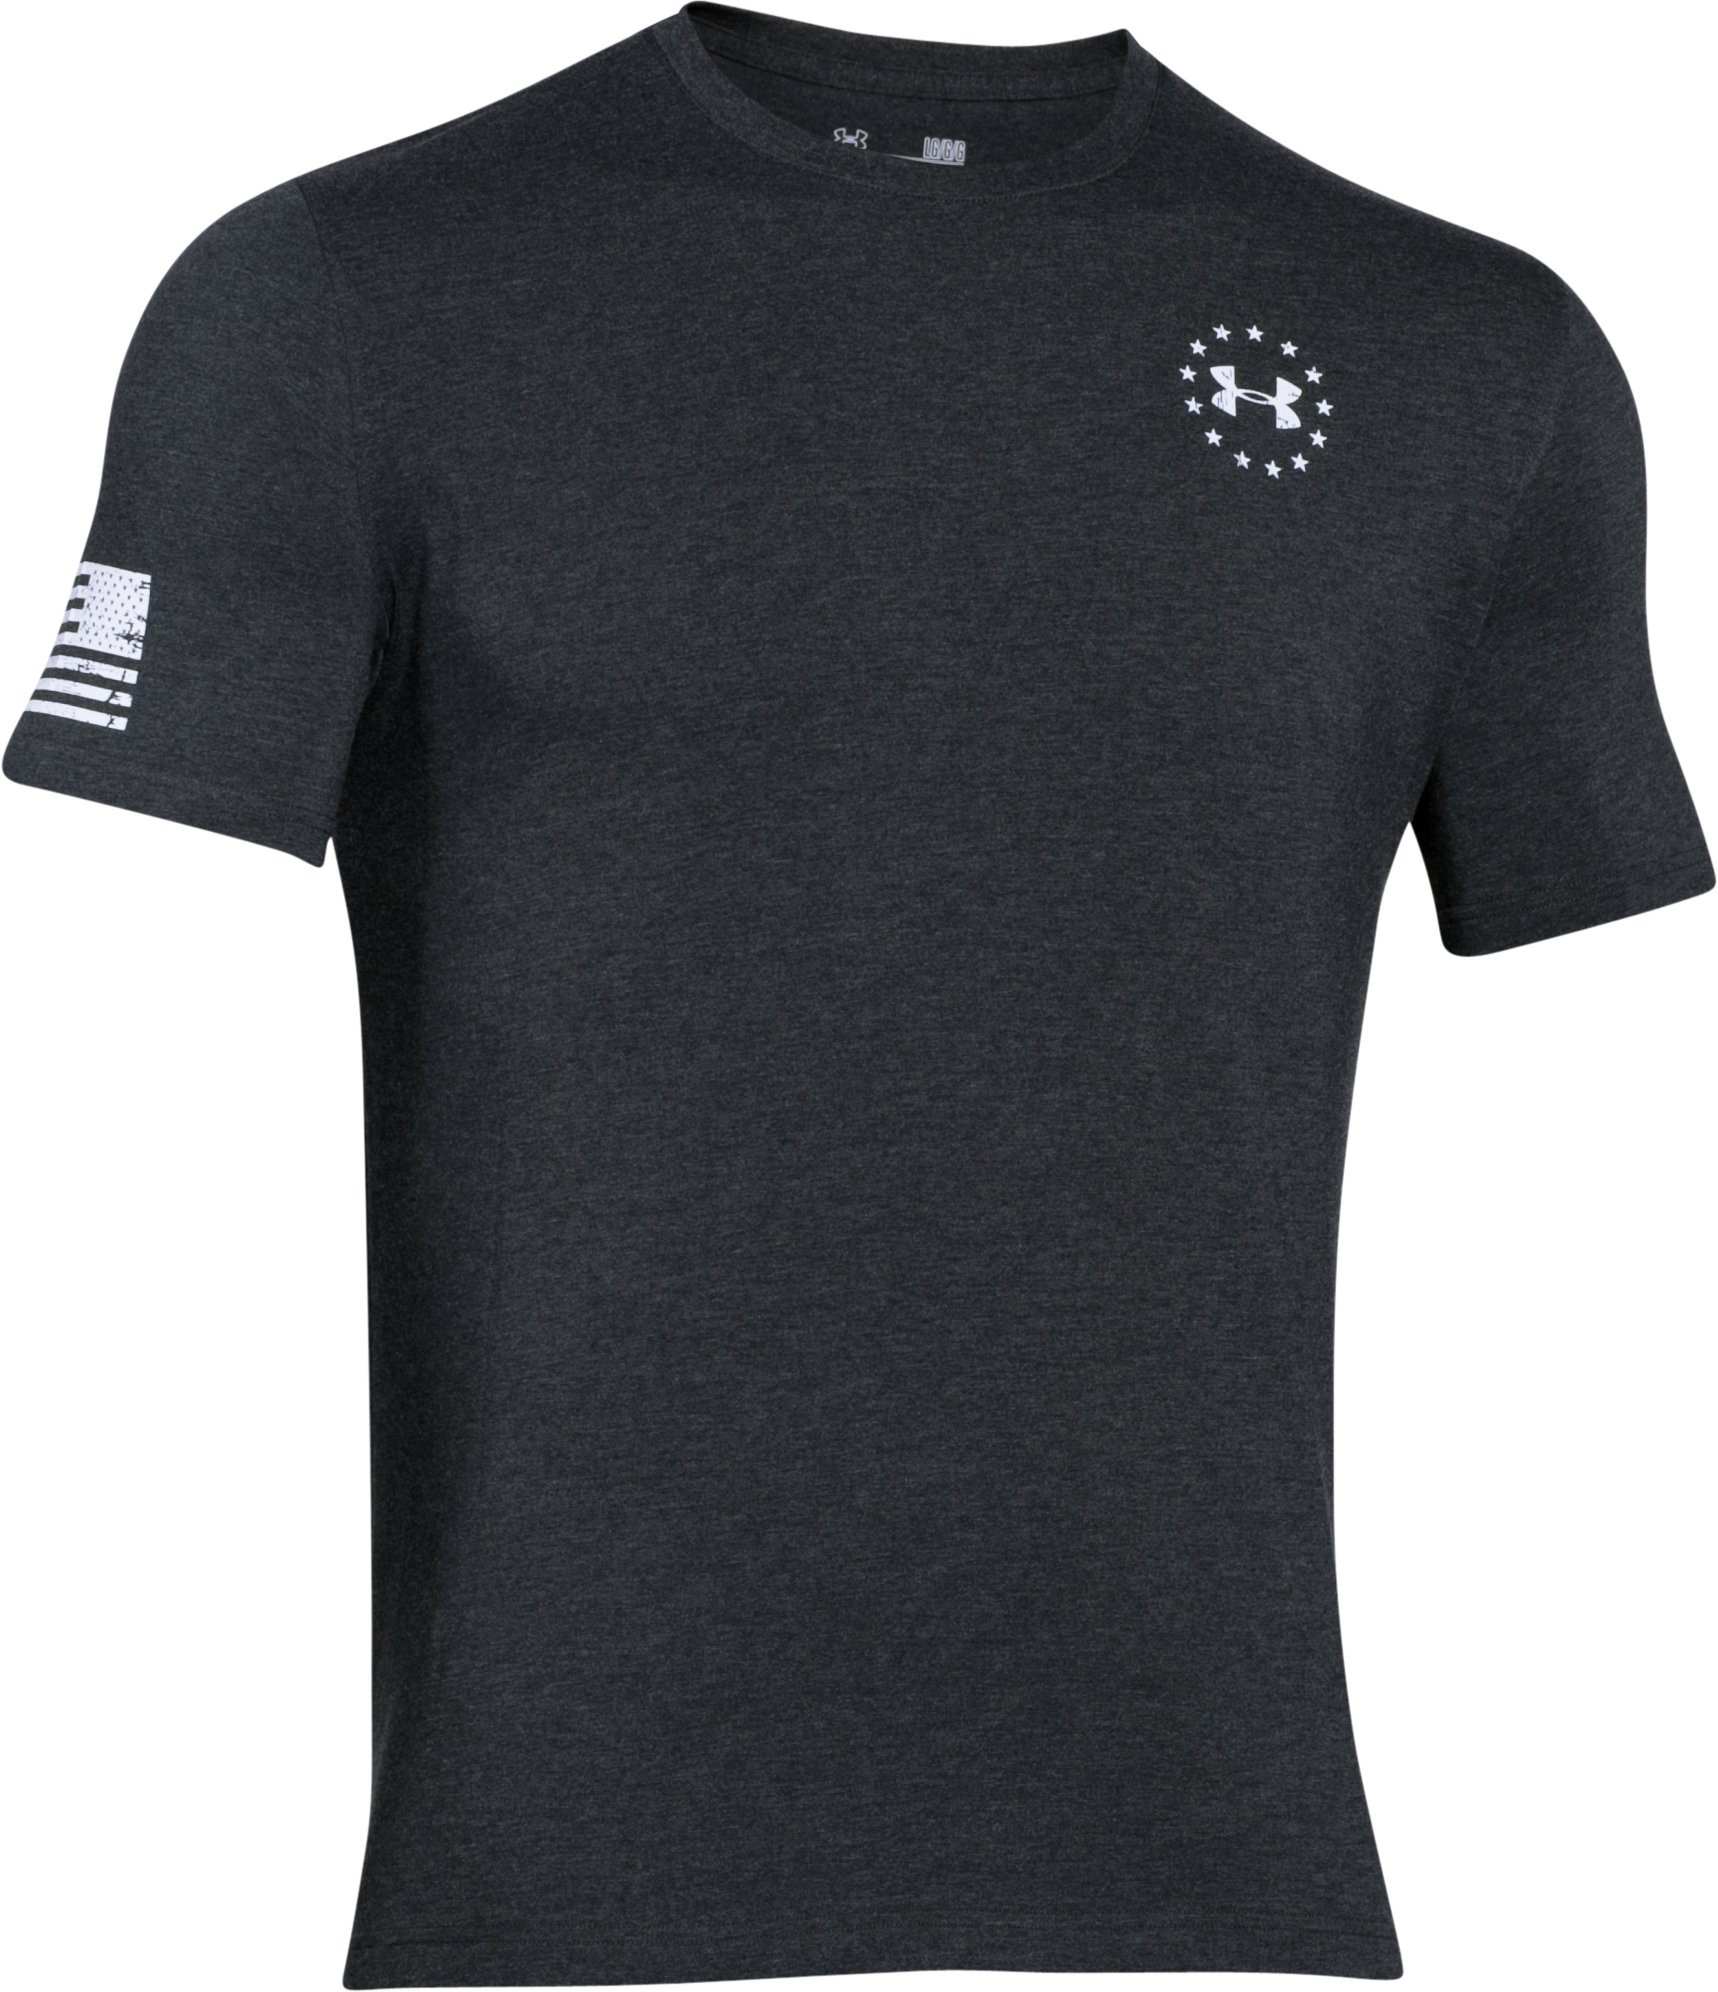 Men's WWP Freedom Flag T-Shirt, Black , undefined